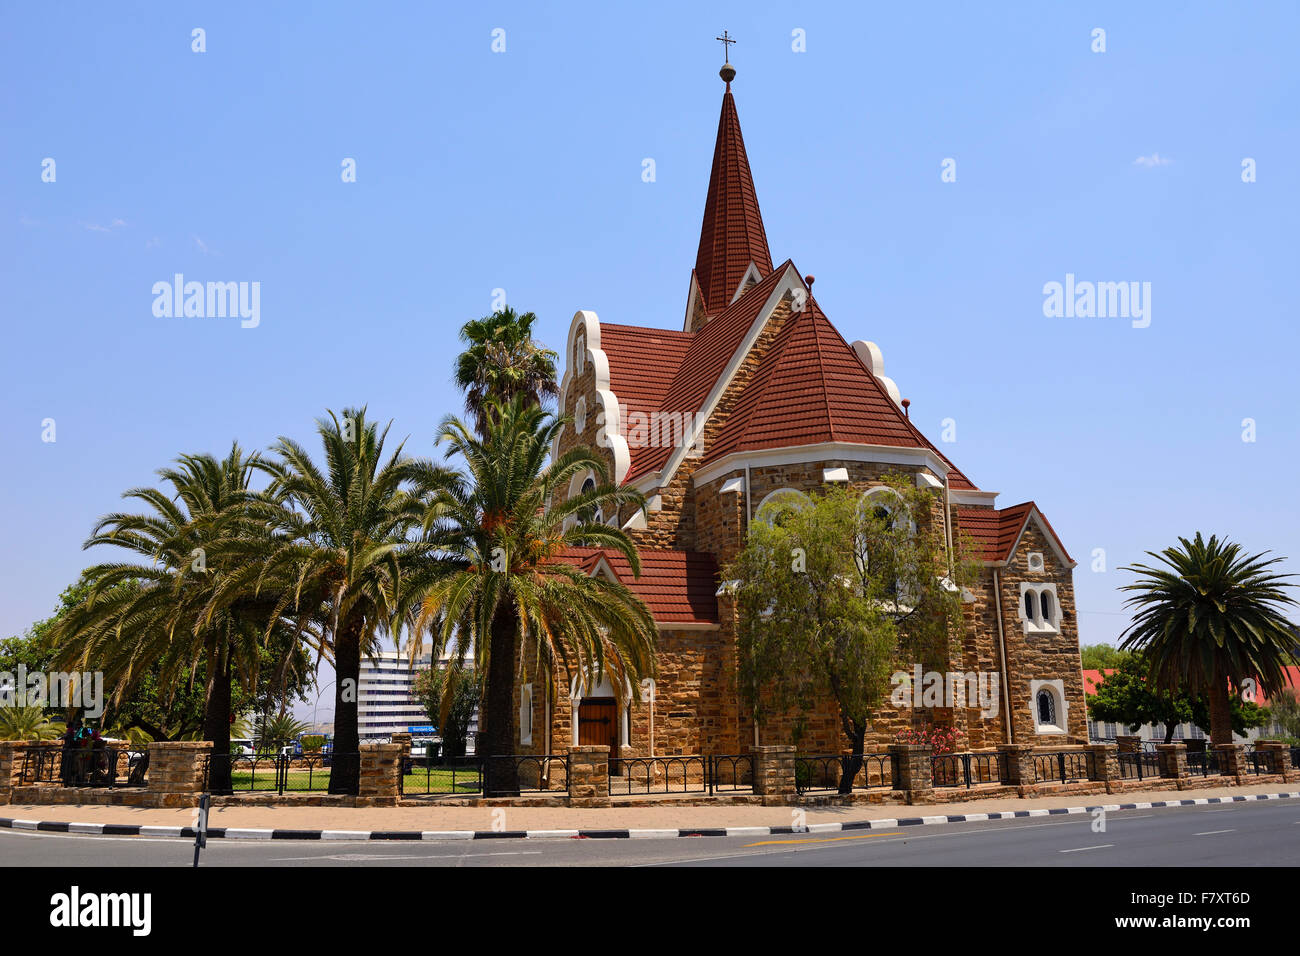 Lutheran Church of Christ (Christus Kirche) in Windhoek, Namibia Stock Photo